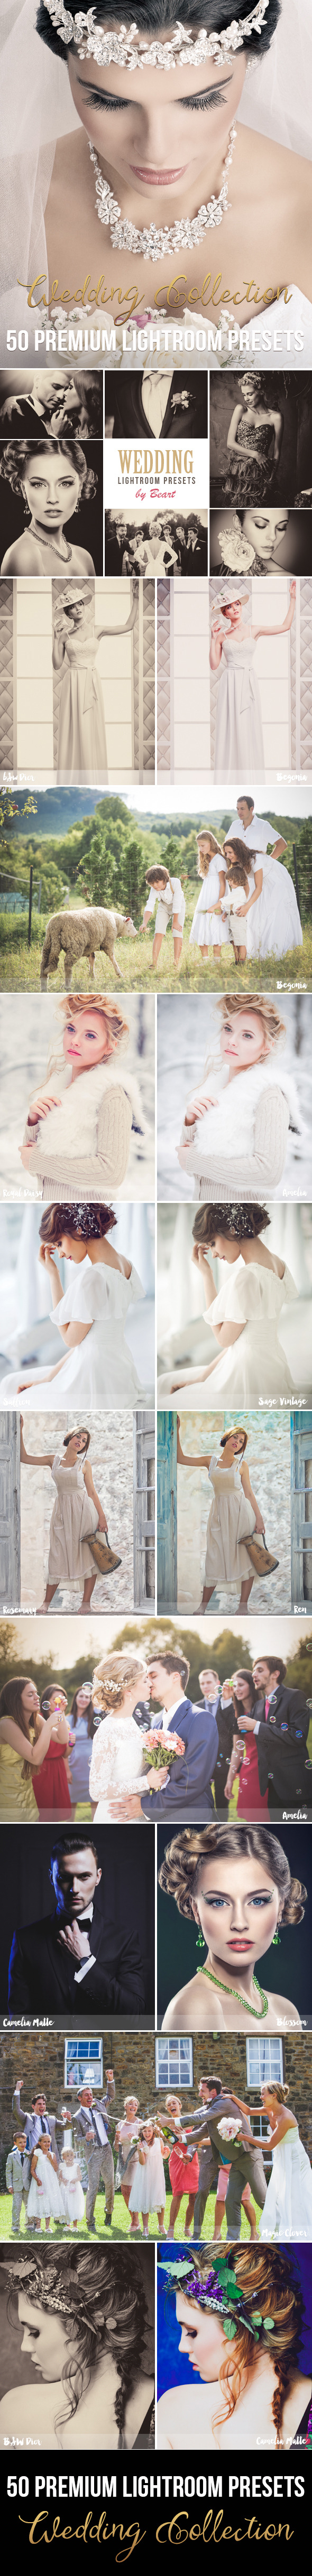 50 Premium Wedding Lightroom Presets by beart-presets | GraphicRiver